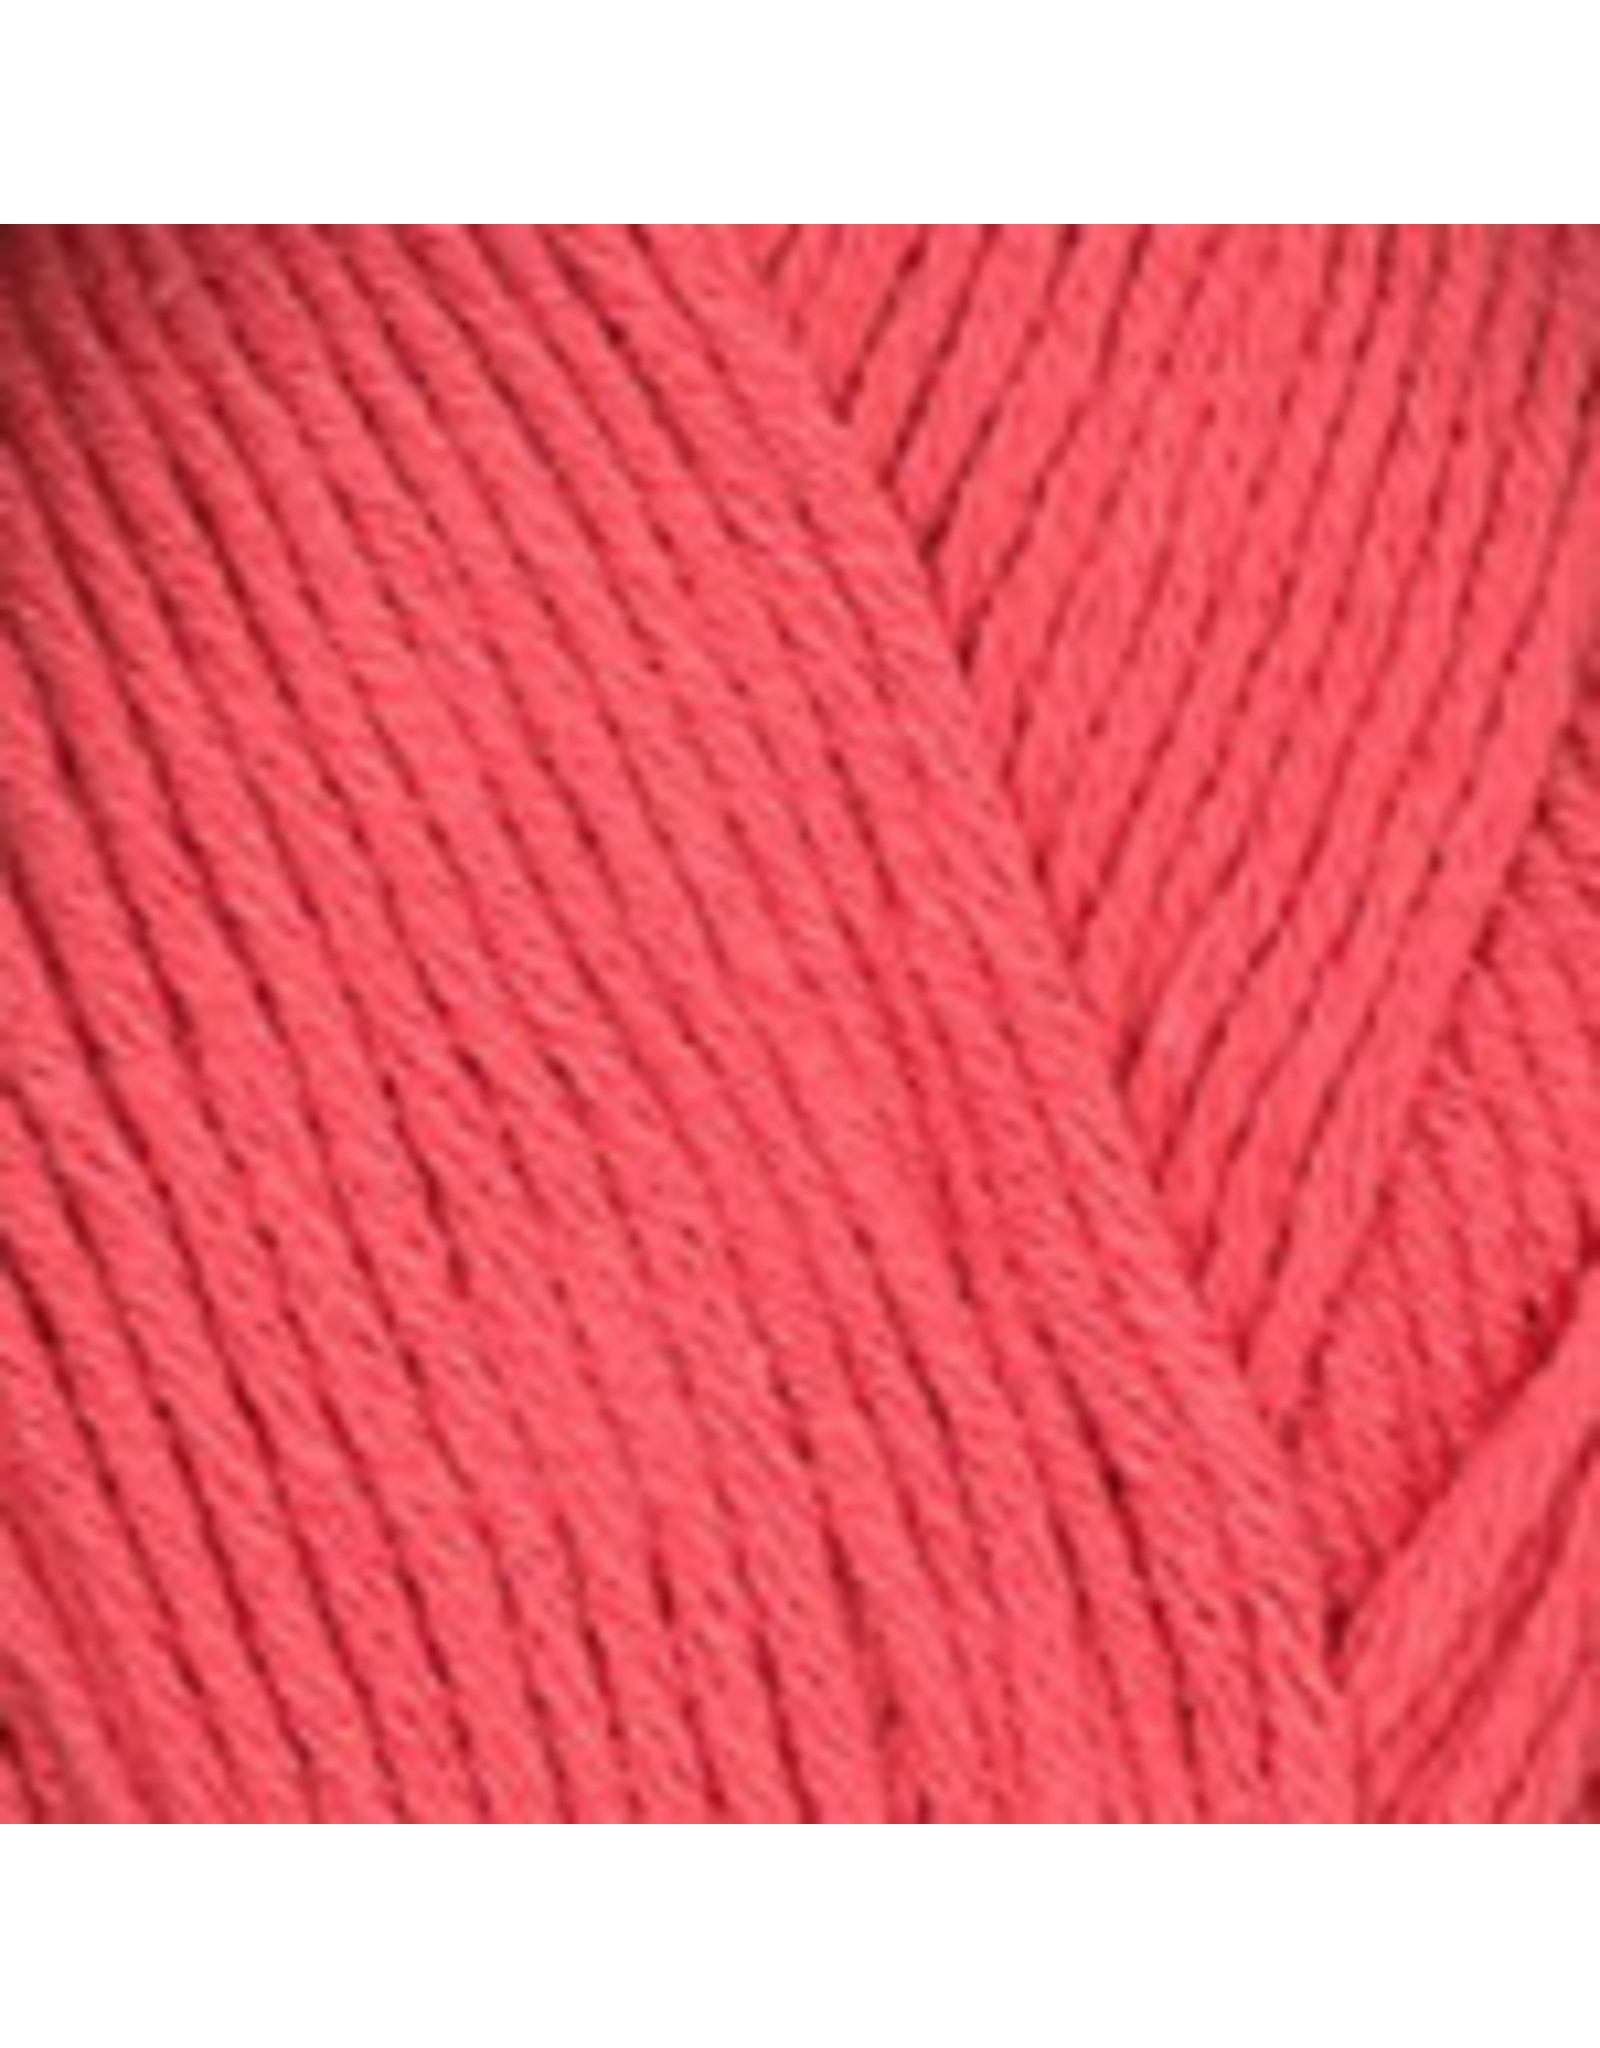 Plymouth Yarn Plymouth: Dreambaby DK, (Pinks/Reds/Lav)